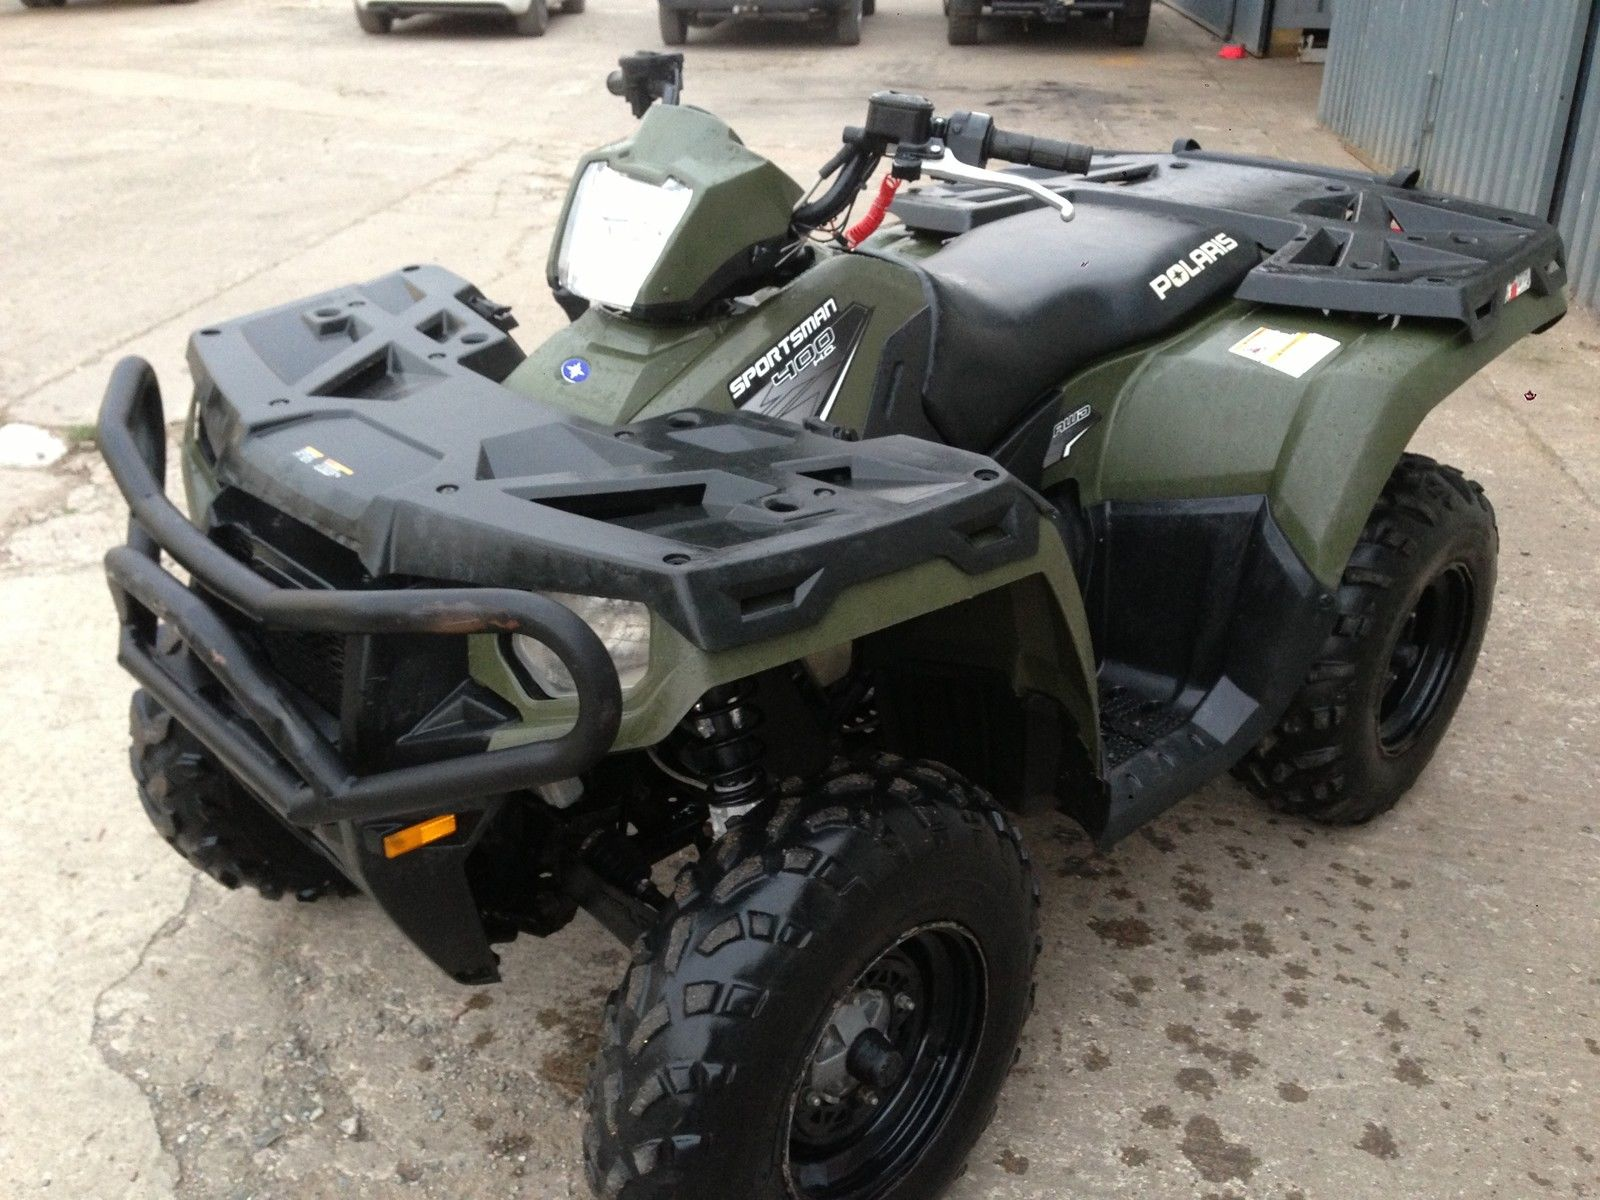 polaris sportsman 400 road legal quad 2011 no vat foreman grizzly trx 500 420. Black Bedroom Furniture Sets. Home Design Ideas